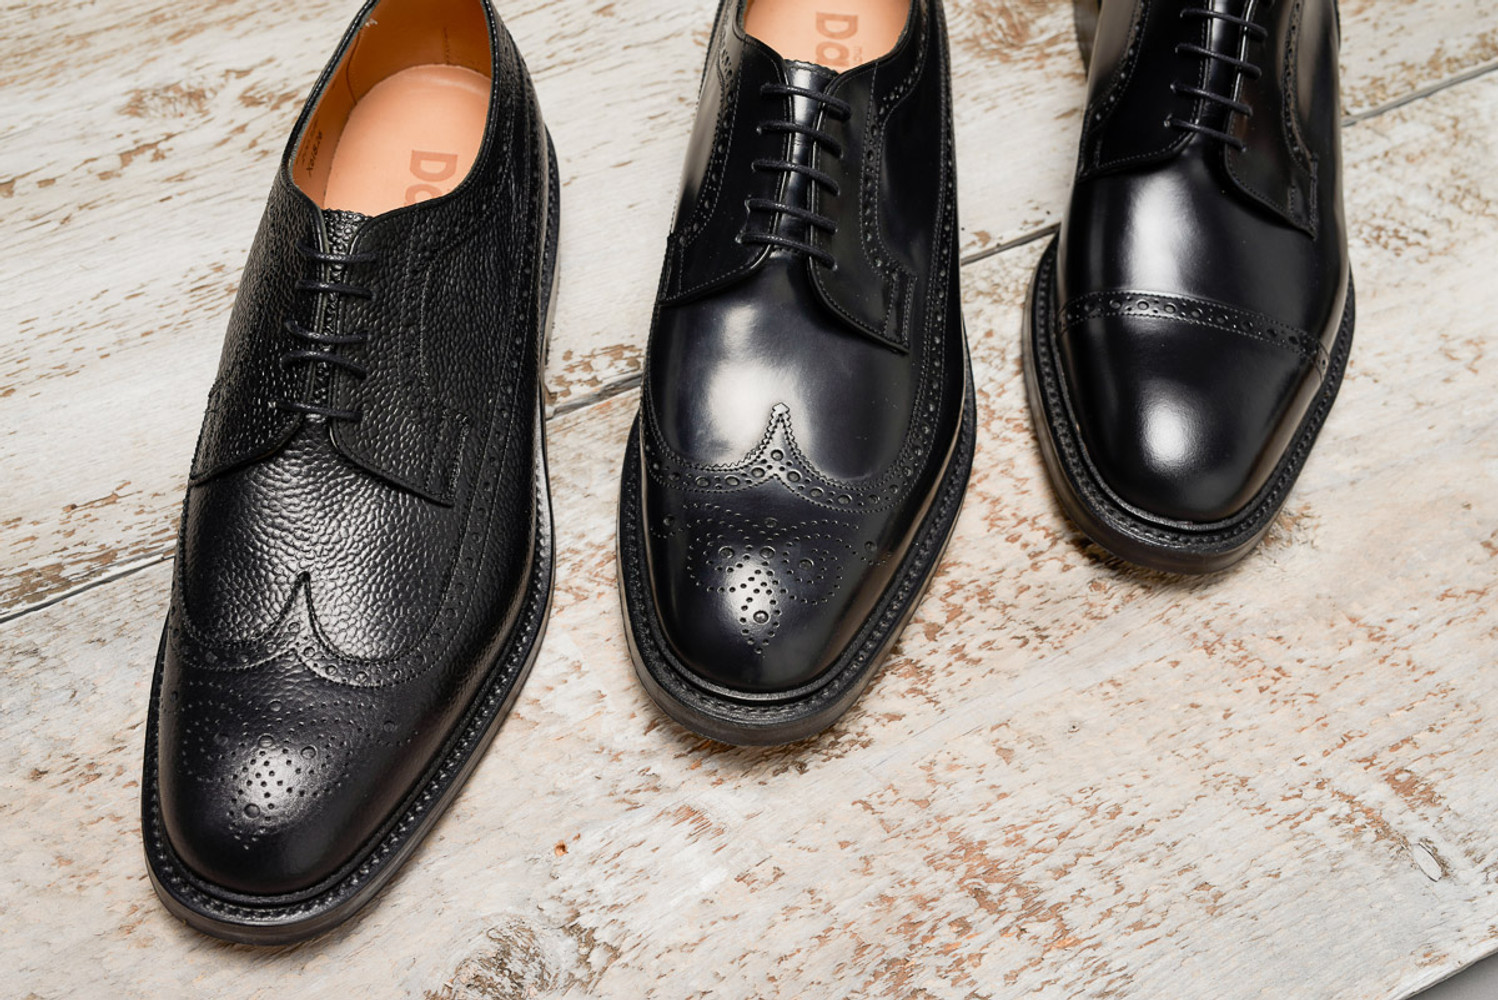 ​SHOP AND COMPARE : DACK'S SHOES ARE THE BETTER VALUE